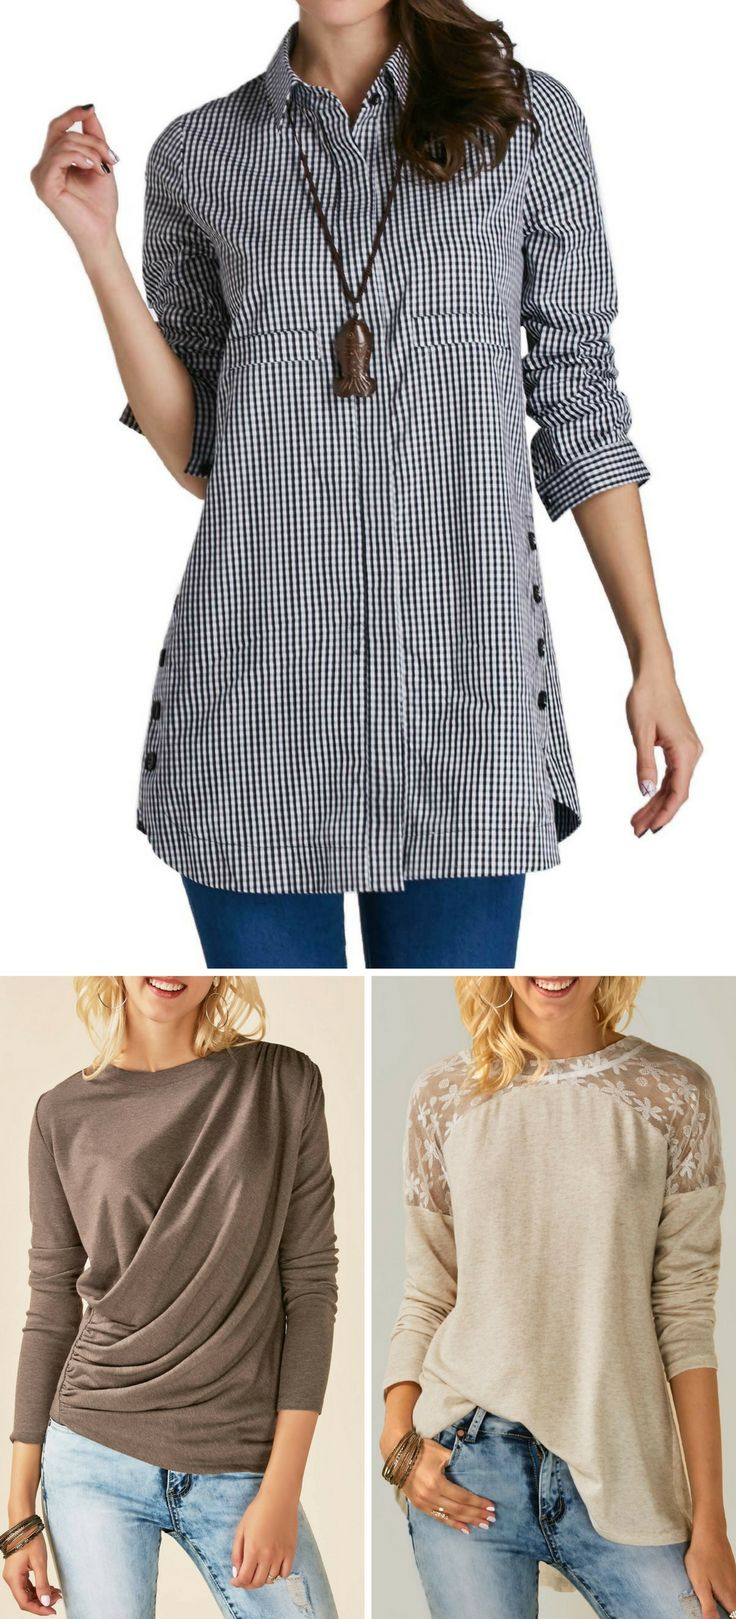 Hot sale~ fall outfits for women, high quality and better service, free shipping worldwide at rosewe.com, check them buy now.